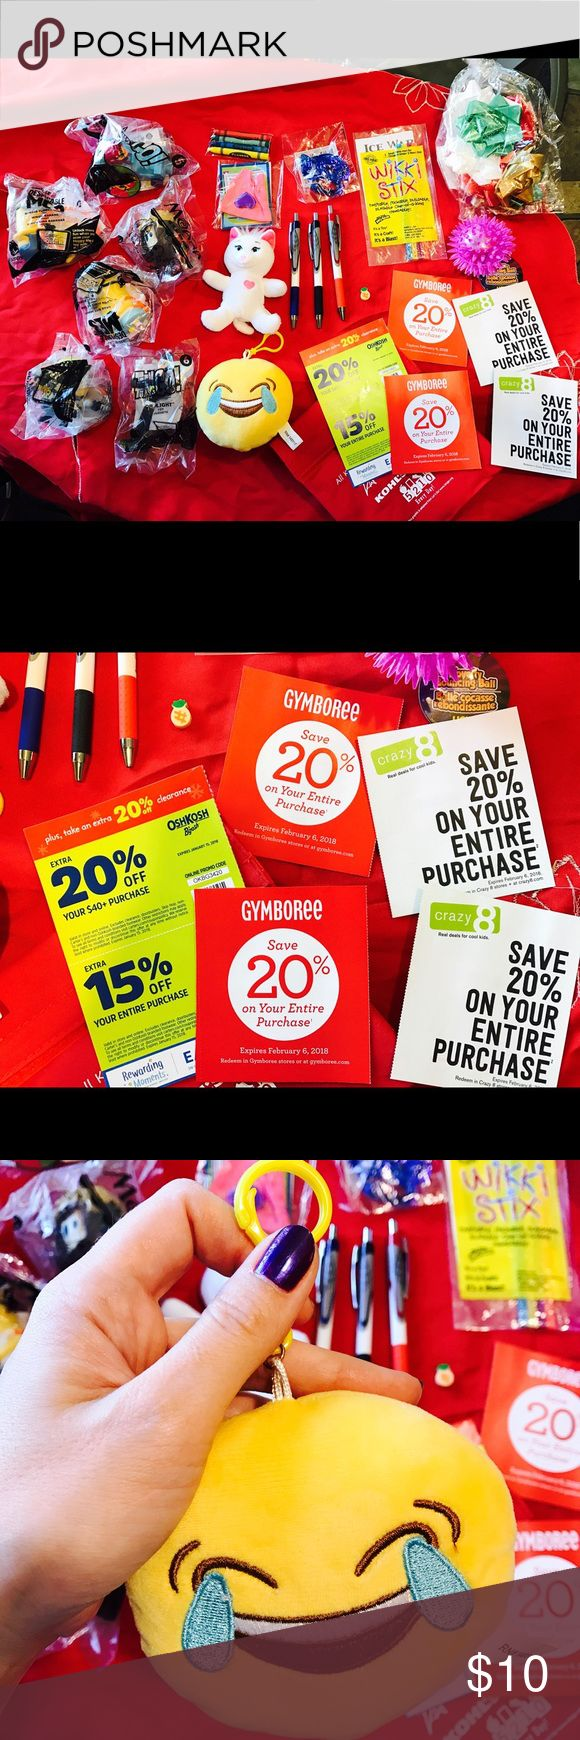 Big lot for kids + coupons Big lot for your kids! Everything New ! Plus 6 coupons for Children stores:  20% and 15% off at OshKosh store, exp. Jan 2018. 2 coupons Crazy8 20% each, exp. Feb.2018. 2 coupons Gymboree 20% each, exp. Feb.2018. Build a Bear workshop small kitty, with tshirt set. Emoji happy key ring, Light up ball, Wikki stix set, Christmas bows set,  other 6 toys, 3 new ZGrip pens, and more other ... everything New! $10 for All!  Fast Priority mail shipping with tracking number…